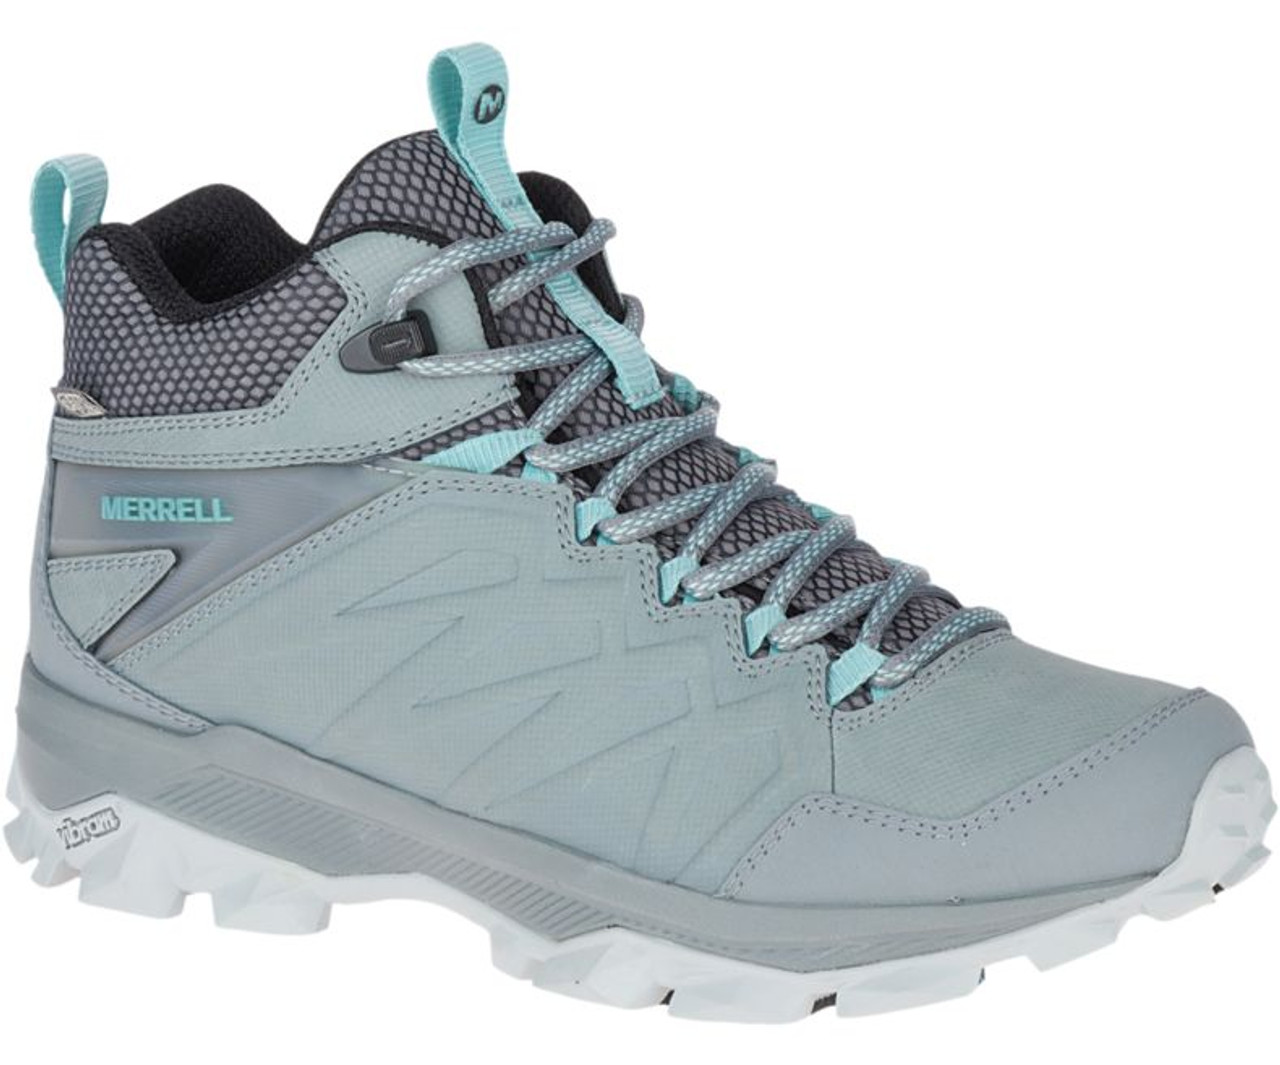 Merrell Mens Thermo Freeze Waterproof Low Rise Hiking Boots